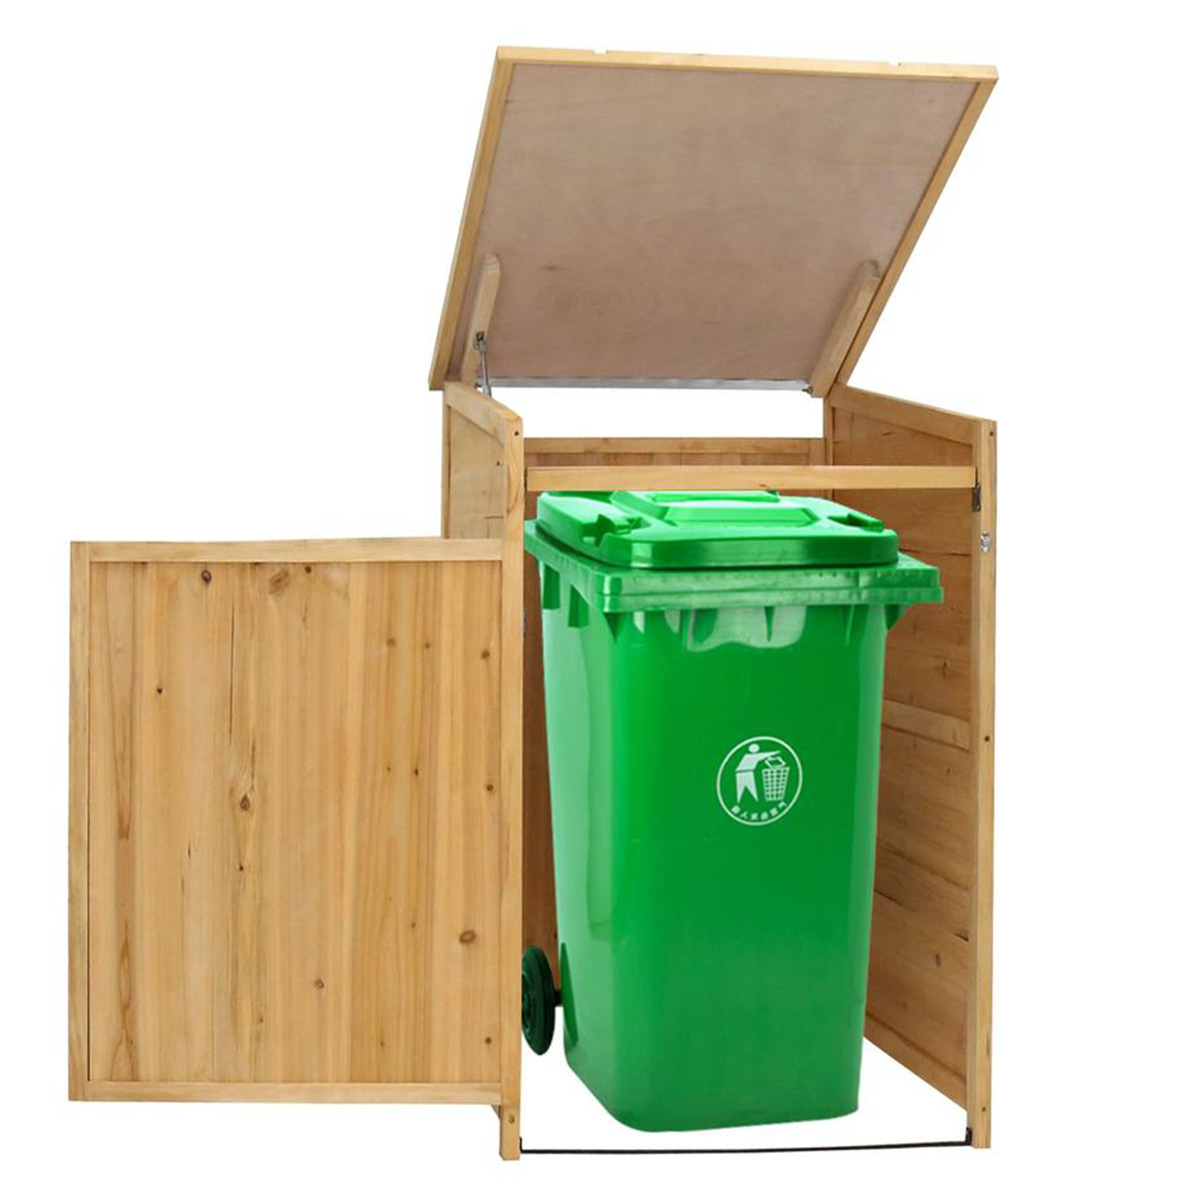 9 ways to disguise your trash bin